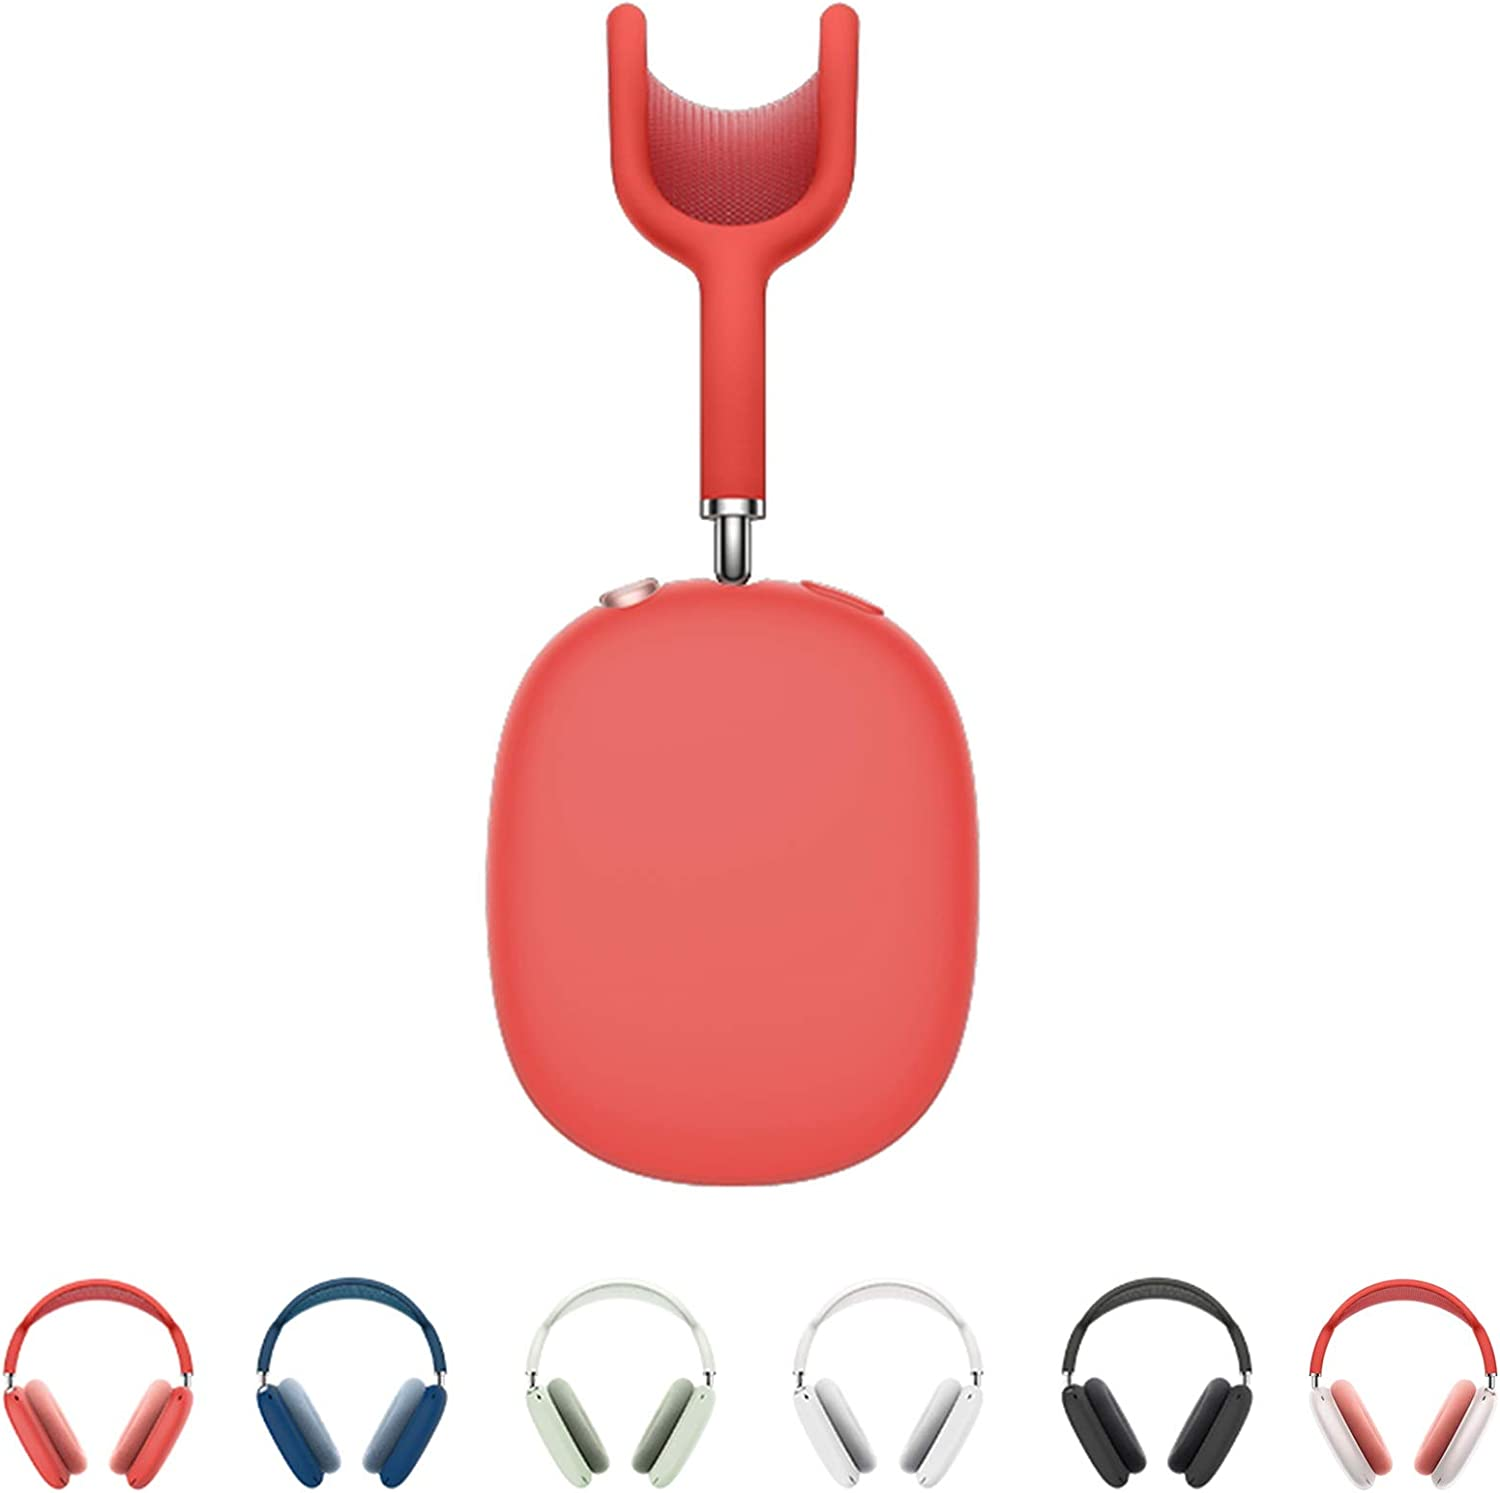 Compatible with Apple AirPods Max, Protective Silicone Sleeve Case for Air Pods Max Headphone, Soft & Long Lasting Headset Protective Cover (Red)